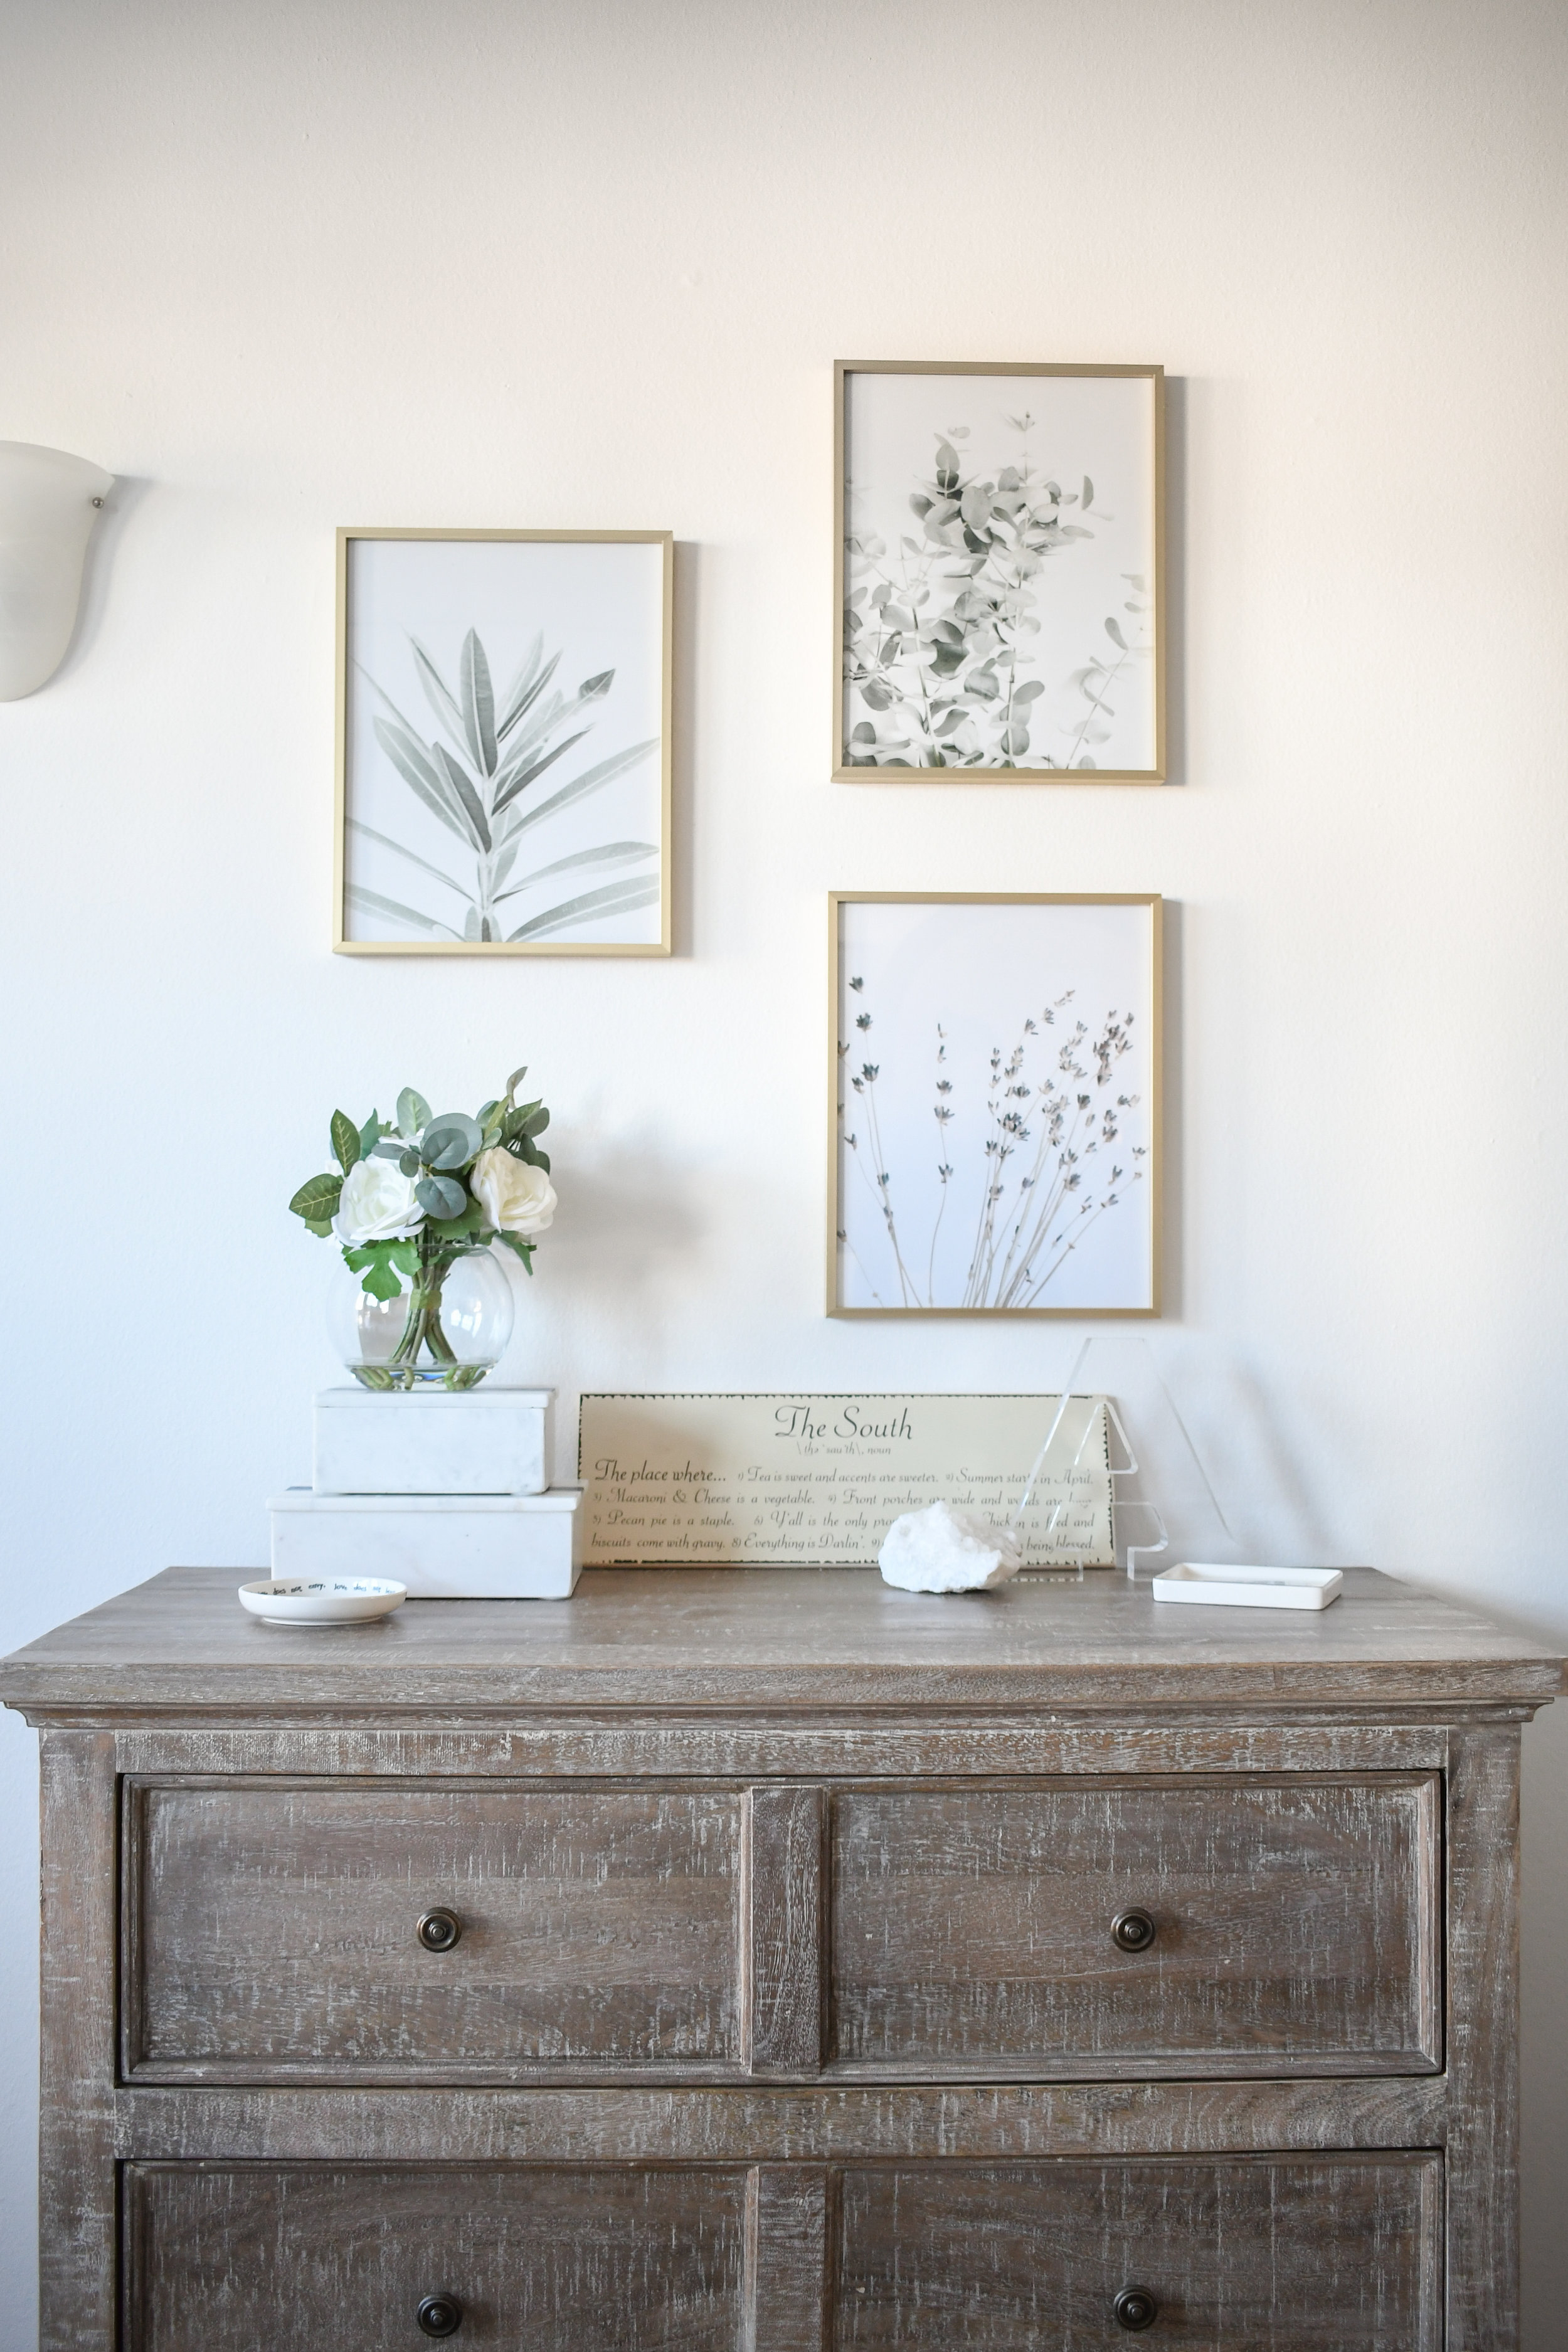 Angela Grace Design // Avila Studio // San Francisco and SF Bay Area Interior Designer, Decorator